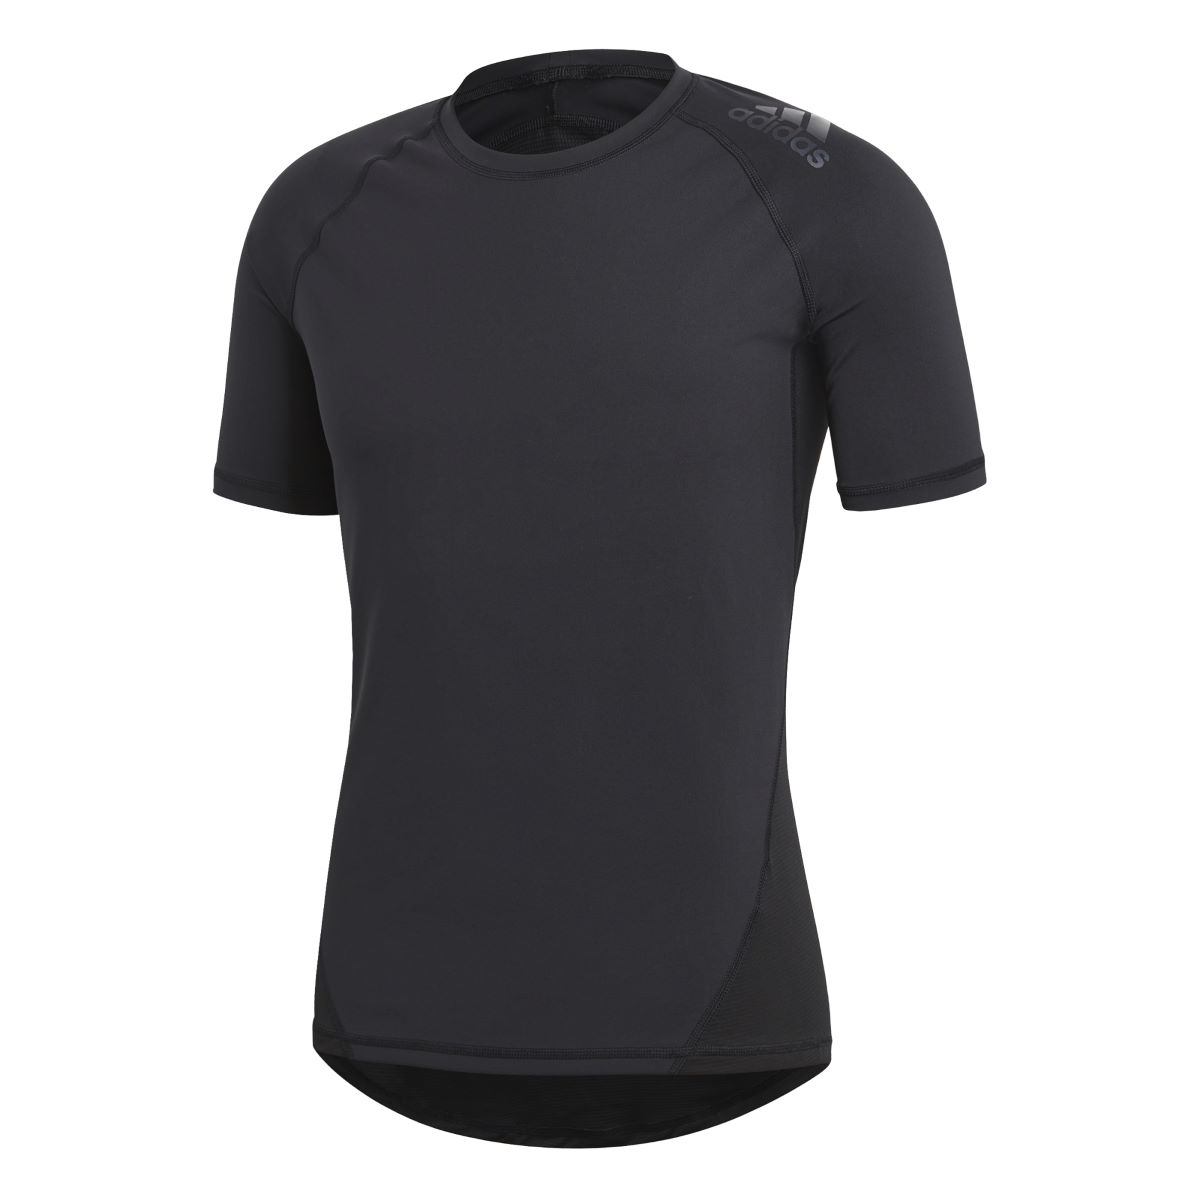 Maillot adidas Alphaskin Sport (manches courtes) - Small Noir